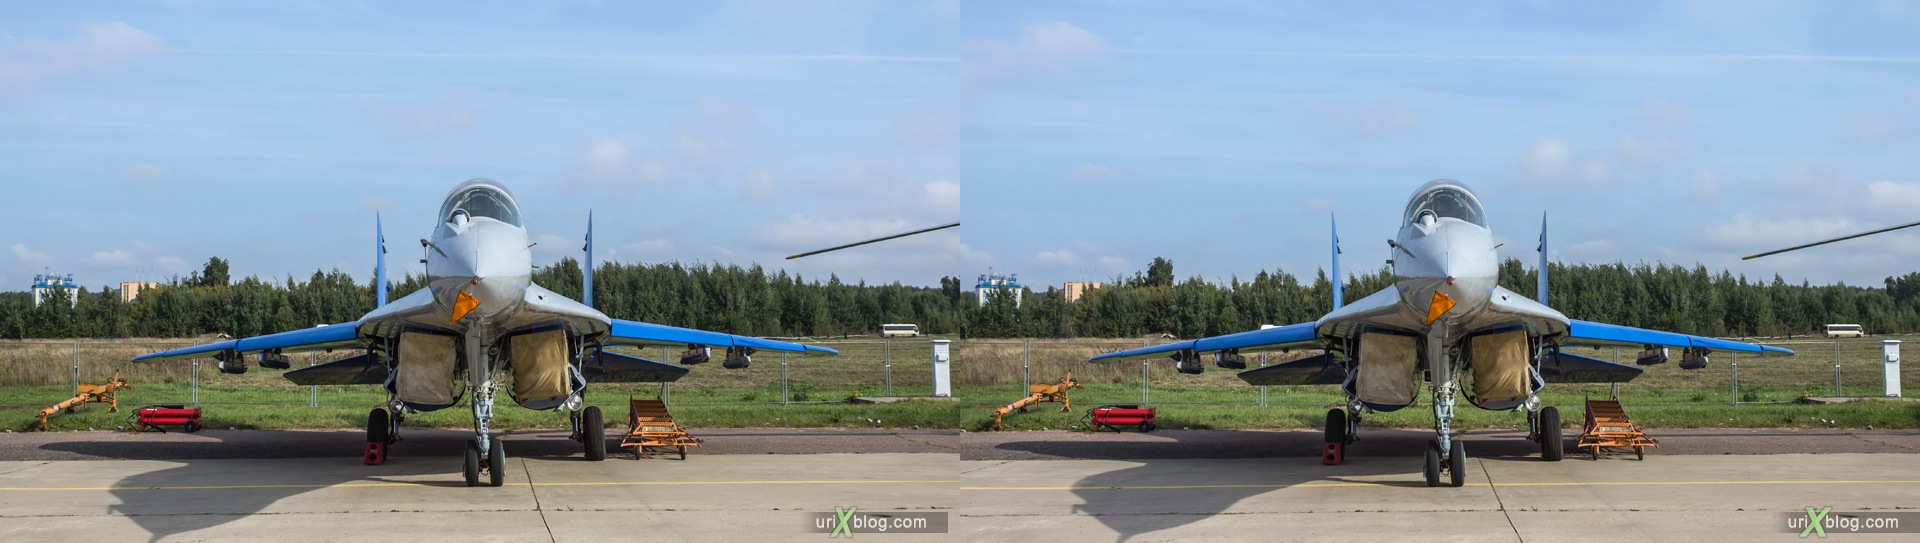 2013, MiG-29LL, MAKS, International Aviation and Space Salon, Russia, Soviet, USSR, Ramenskoye airfield, airplane, 3D, stereo pair, cross-eyed, crossview, cross view stereo pair, stereoscopic